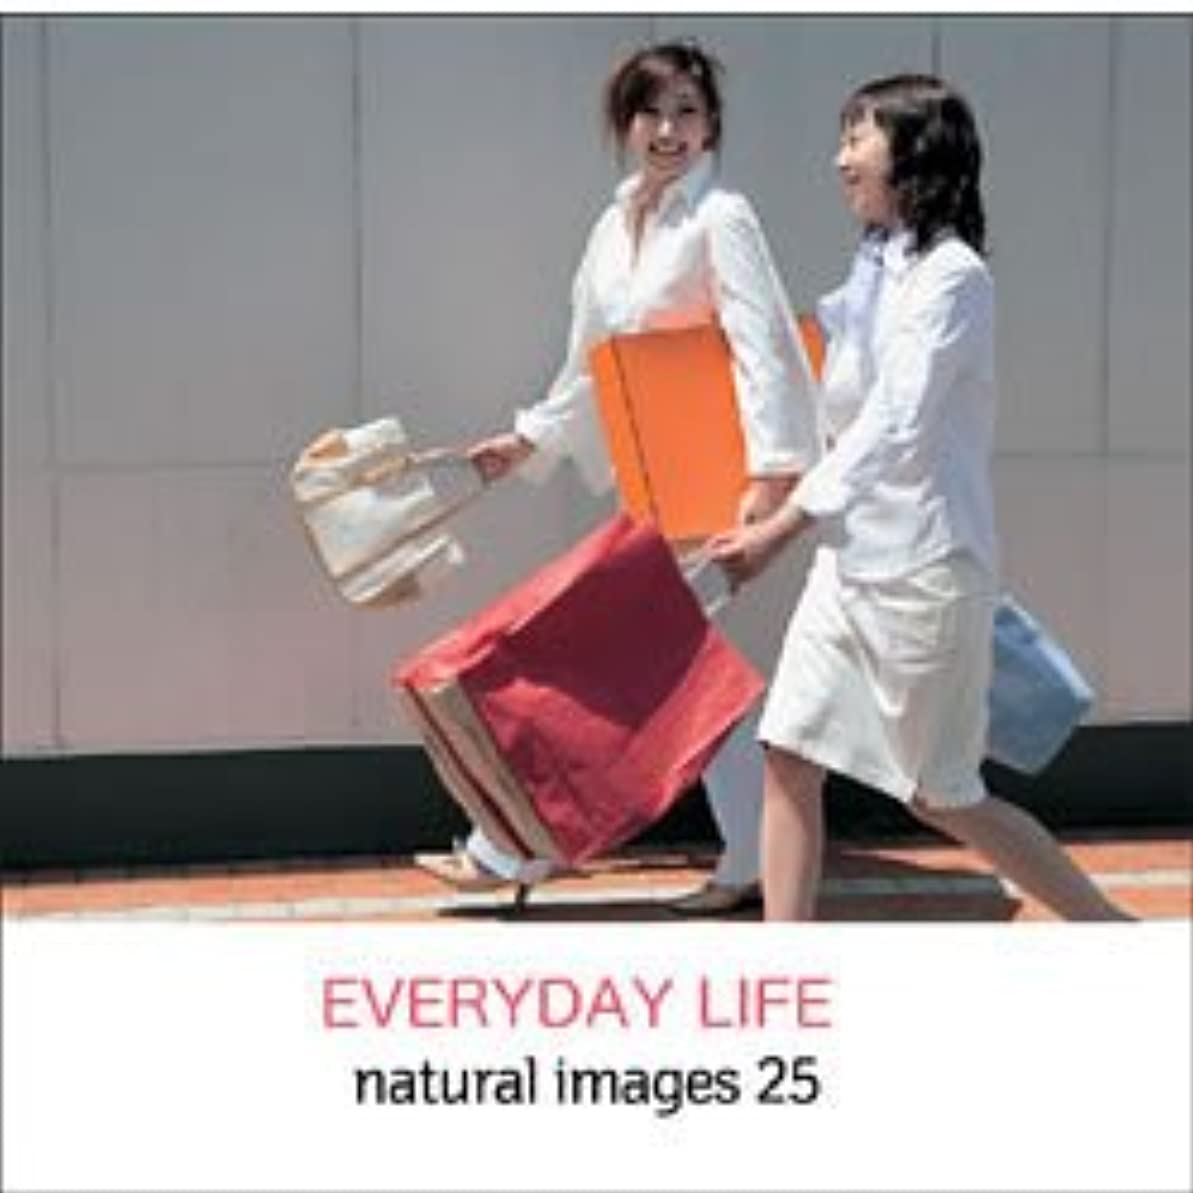 natural images Vol.25 Everyday Life